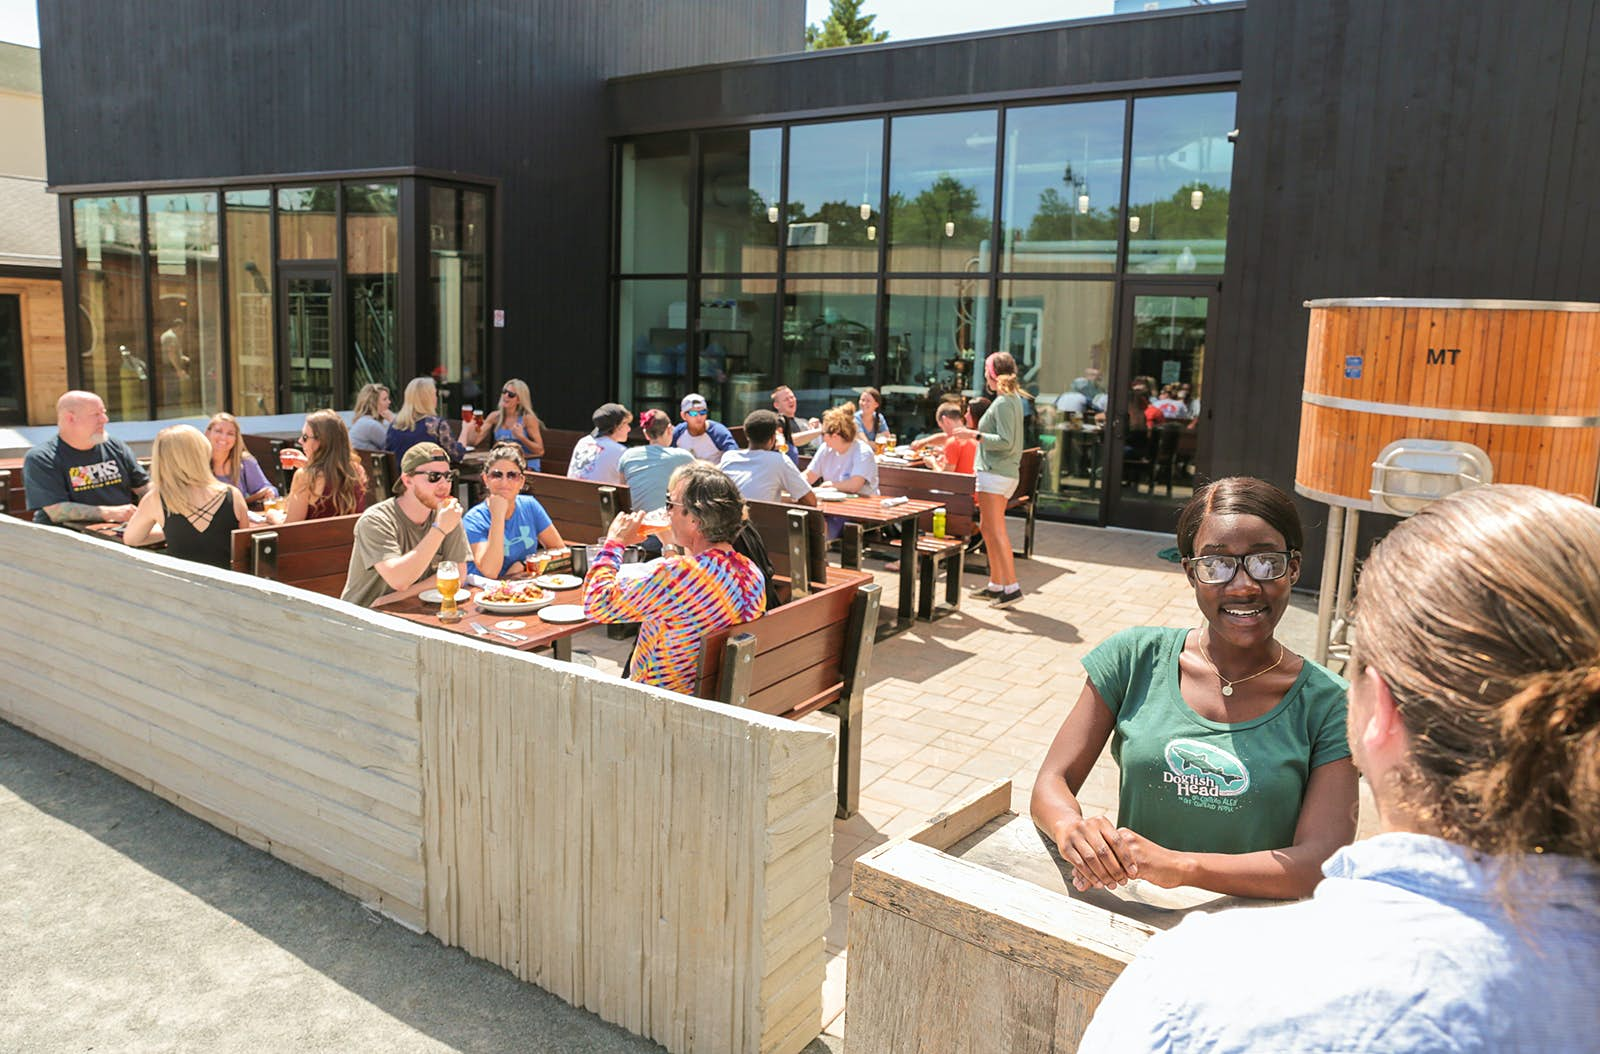 Hostess checks in a guest at Dogfish Brewing in Delaware, with a modern, concrete patio full of people in the background. Many craft breweries in the US now feature outdoor patio spaces.